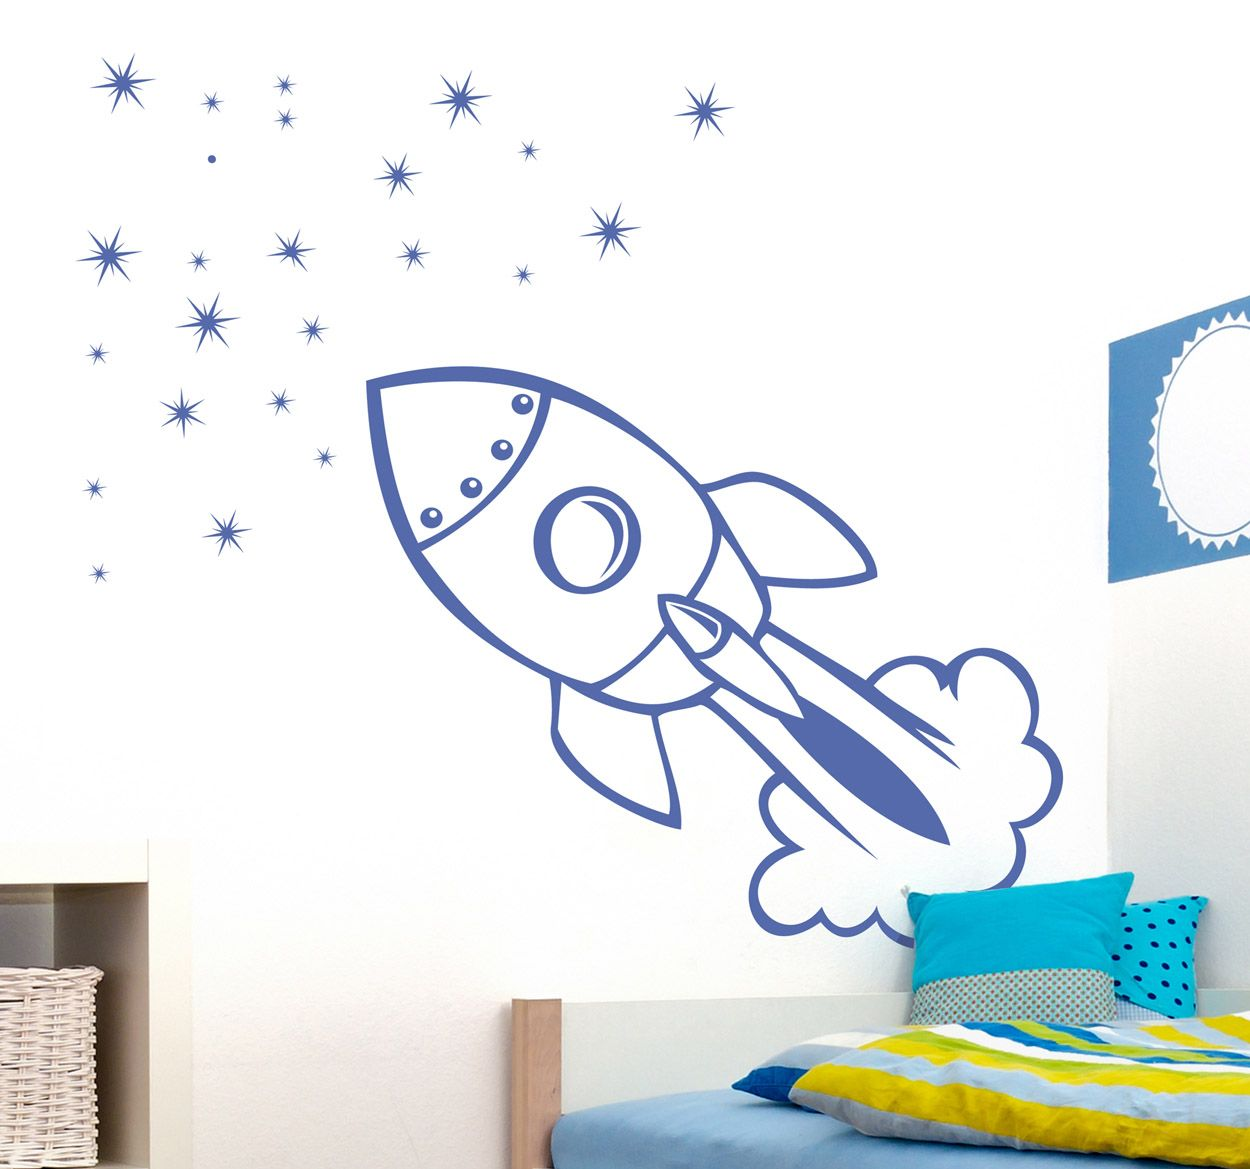 create a luxurious and unique decoration for the kids room with this fun rocket wall sticker is sure to liven up your son s bedroom and make it a more pleasant space to spend time perfect for completing a themed room